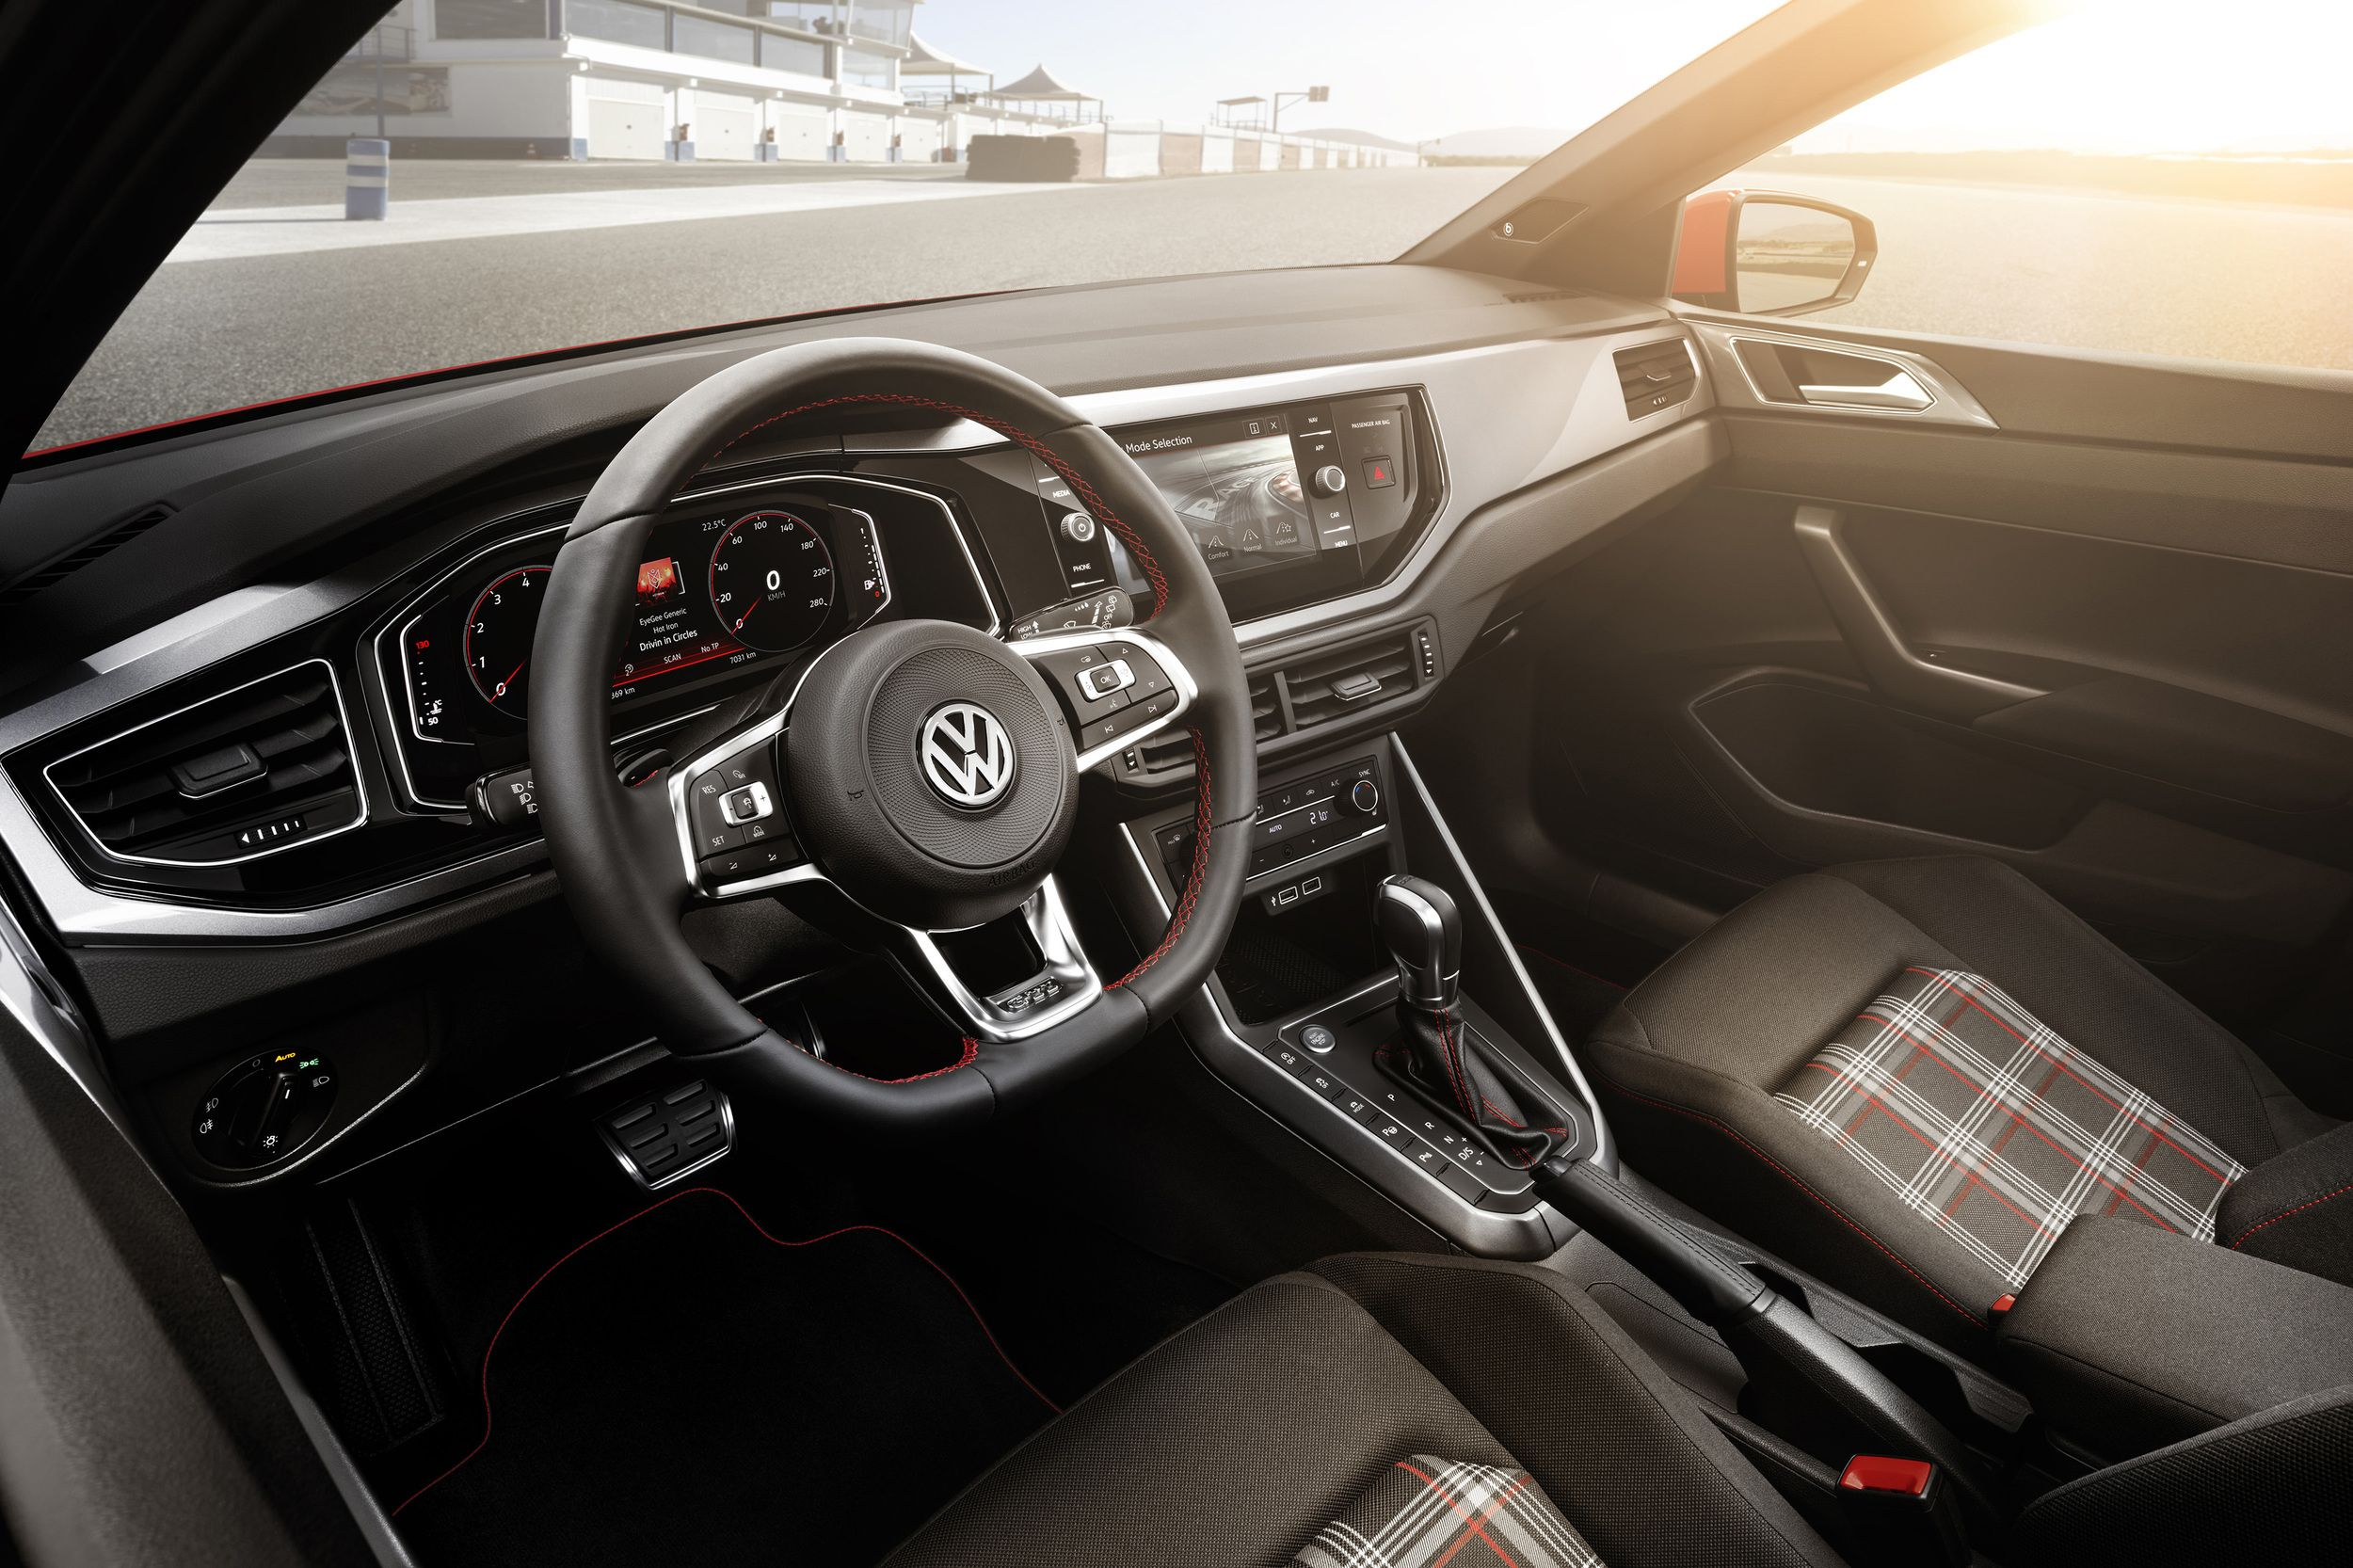 Pin By Danny Danny On Car Interiors Polo Gti Vw Polo Vw Polo Gti